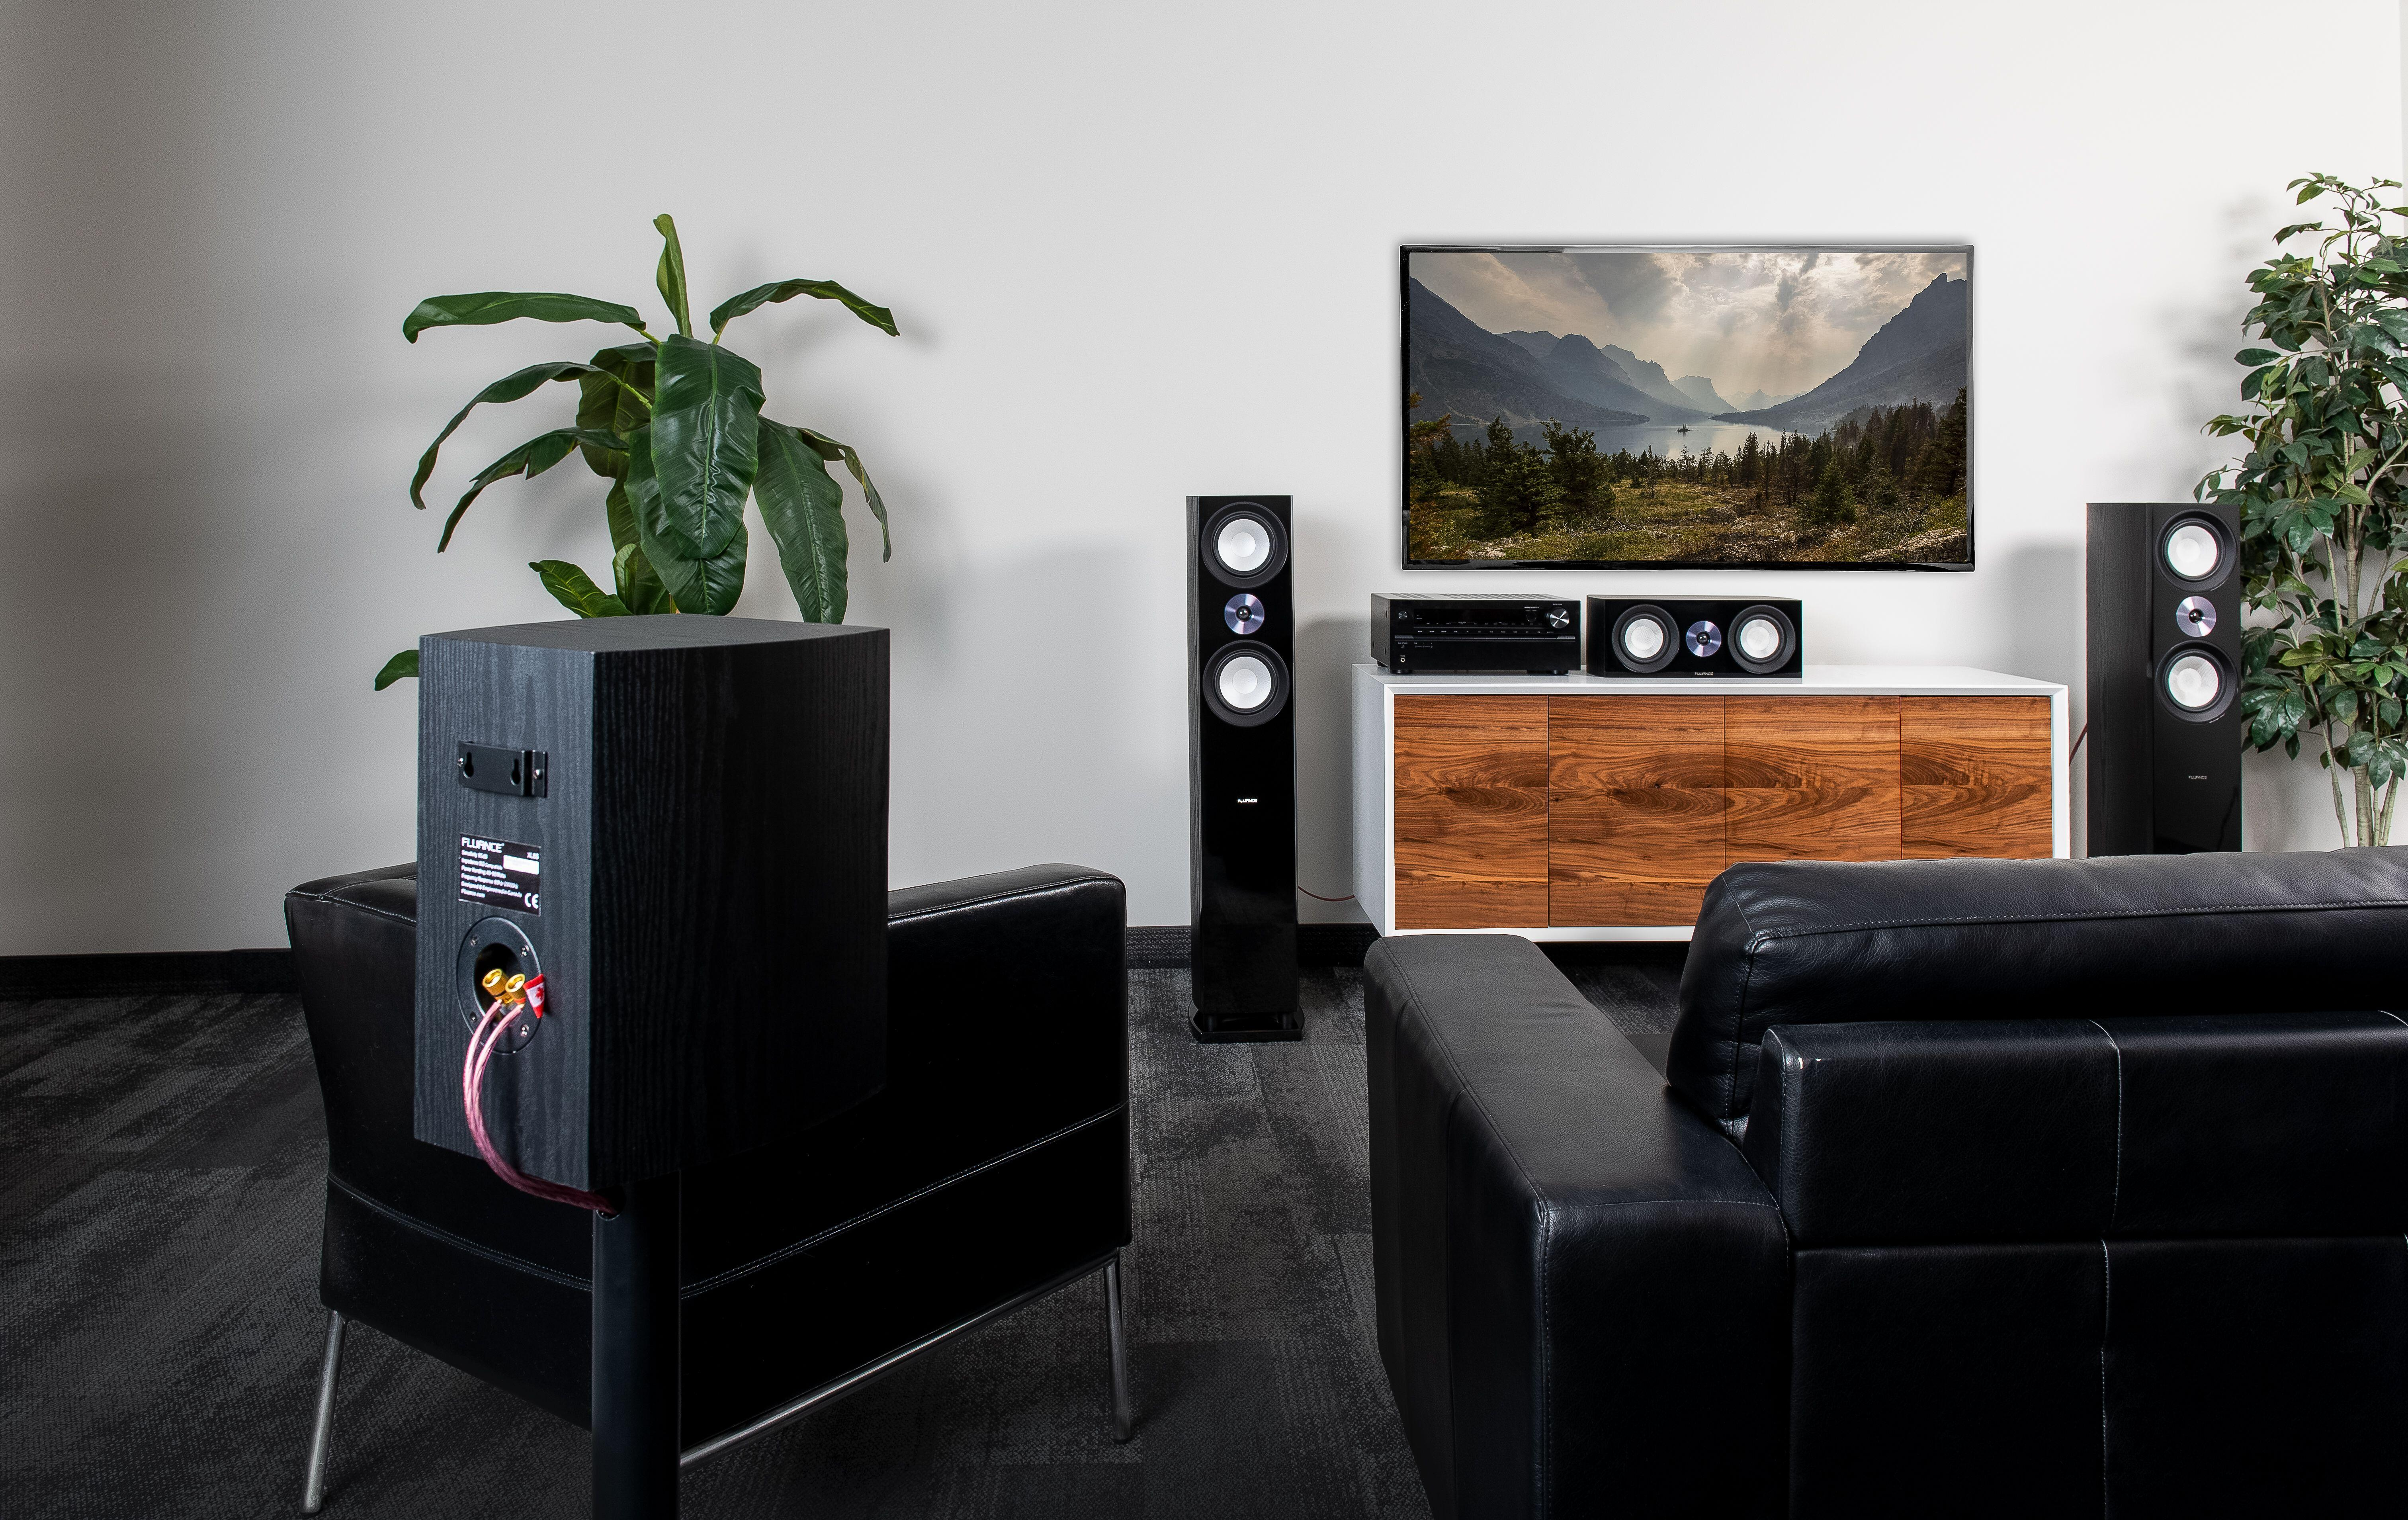 Fluance goes big with XL8 home theater speakers